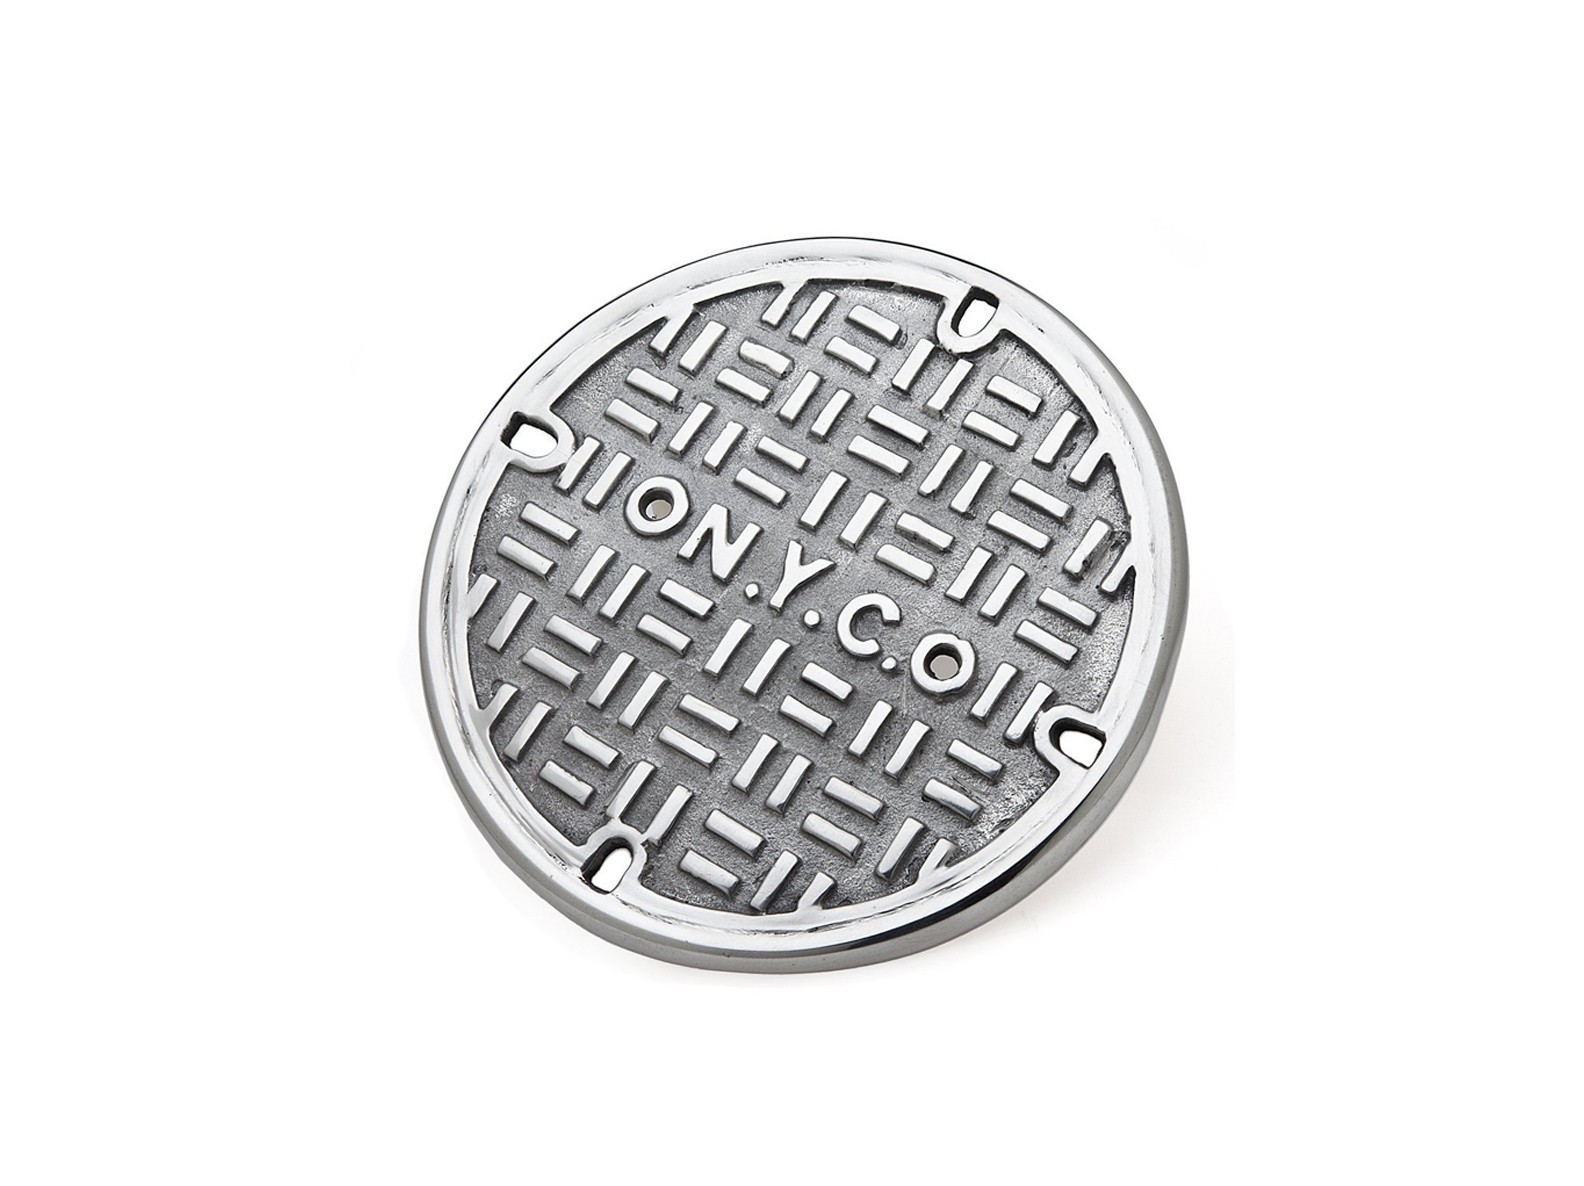 silver trinket resembling a manhole cover from NYC